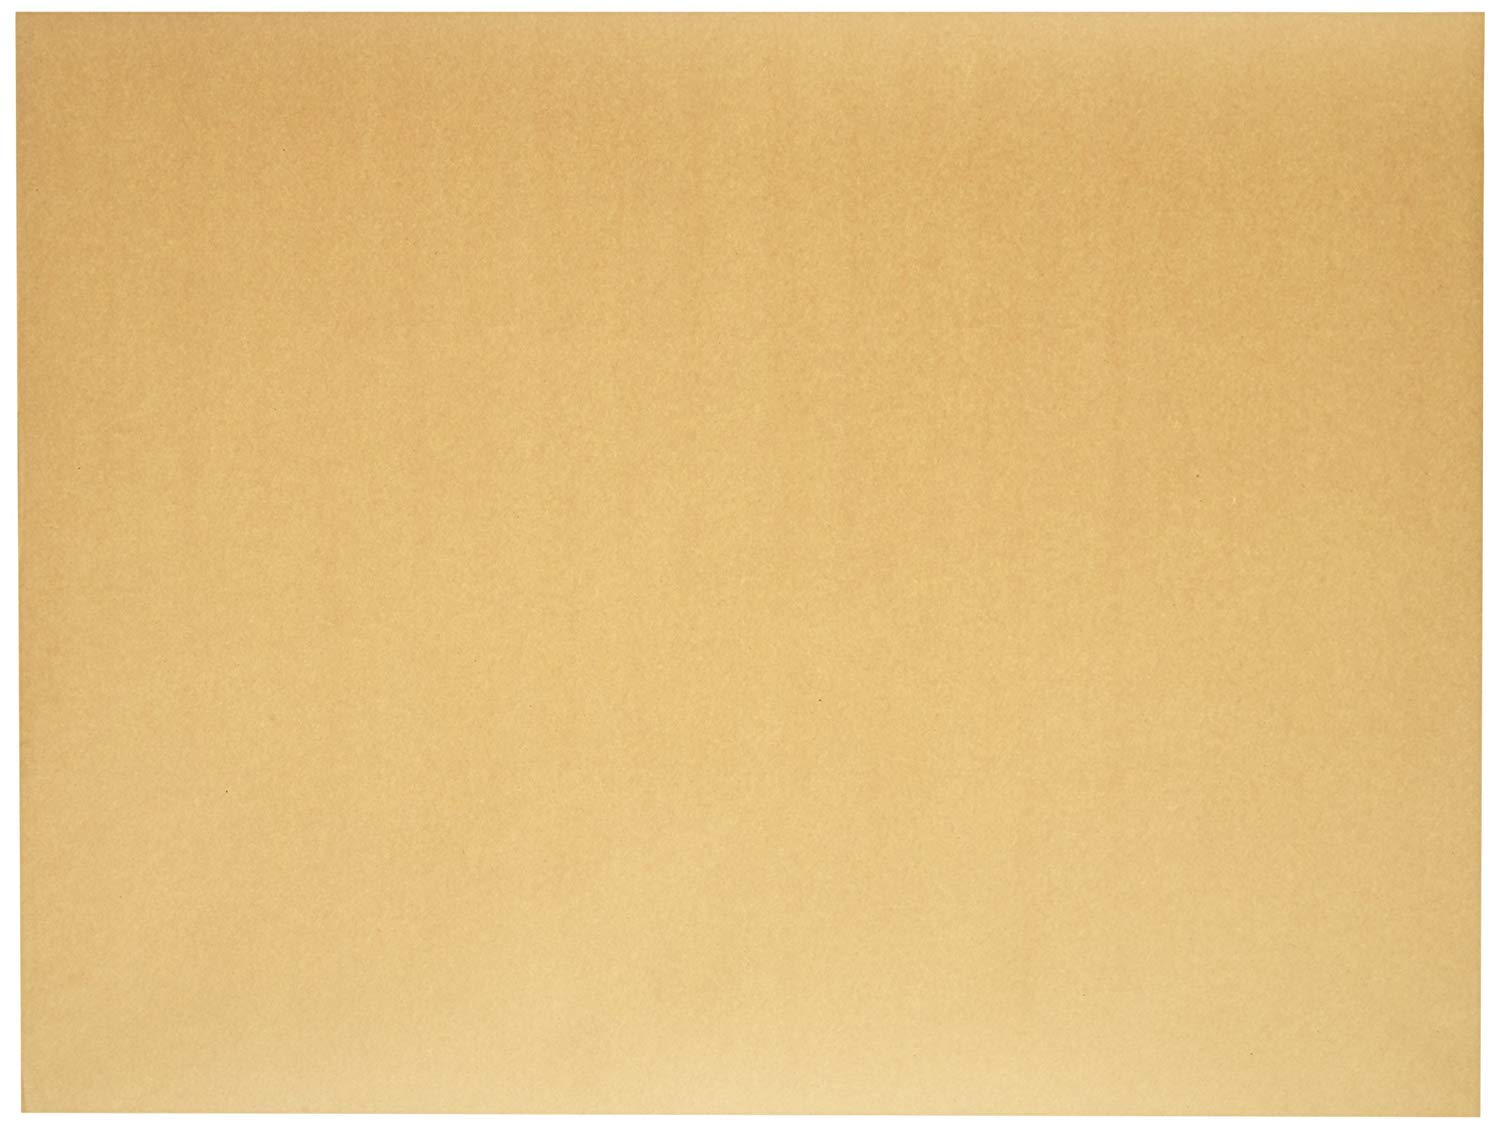 Sax Drawing Paper 12 x 18 inches 50 Pound White Pack of 500